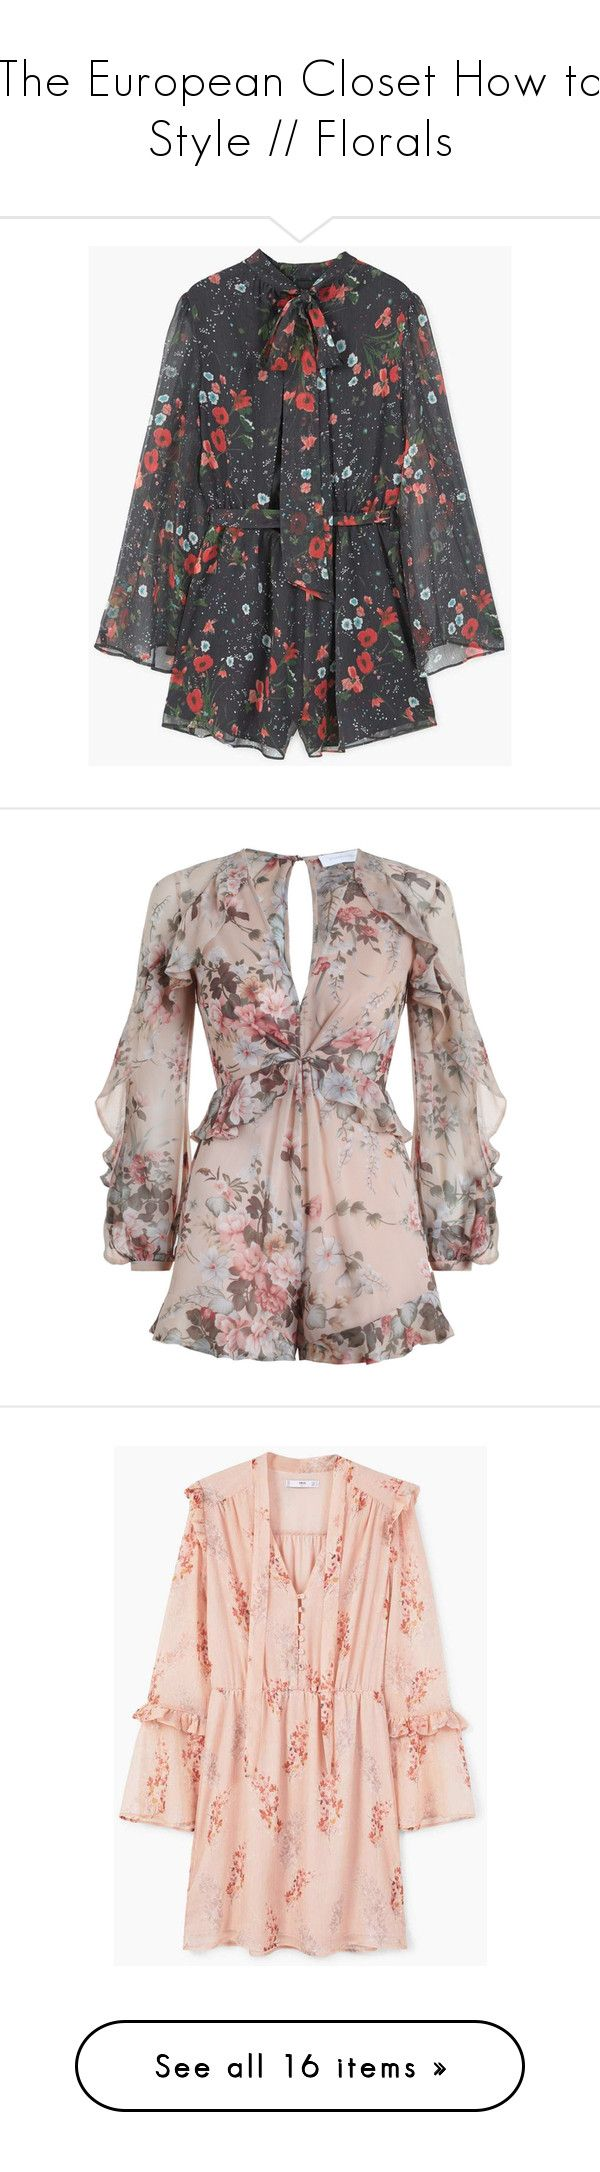 """""""The European Closet How to Style // Florals"""" by theeuropeancloset ❤ liked on Polyvore featuring jumpsuits, jump suit, long jumpsuits, floral jumpsuit, floral print jumpsuit, short jumpsuits, rompers, dresses, zimmermann and floral romper"""